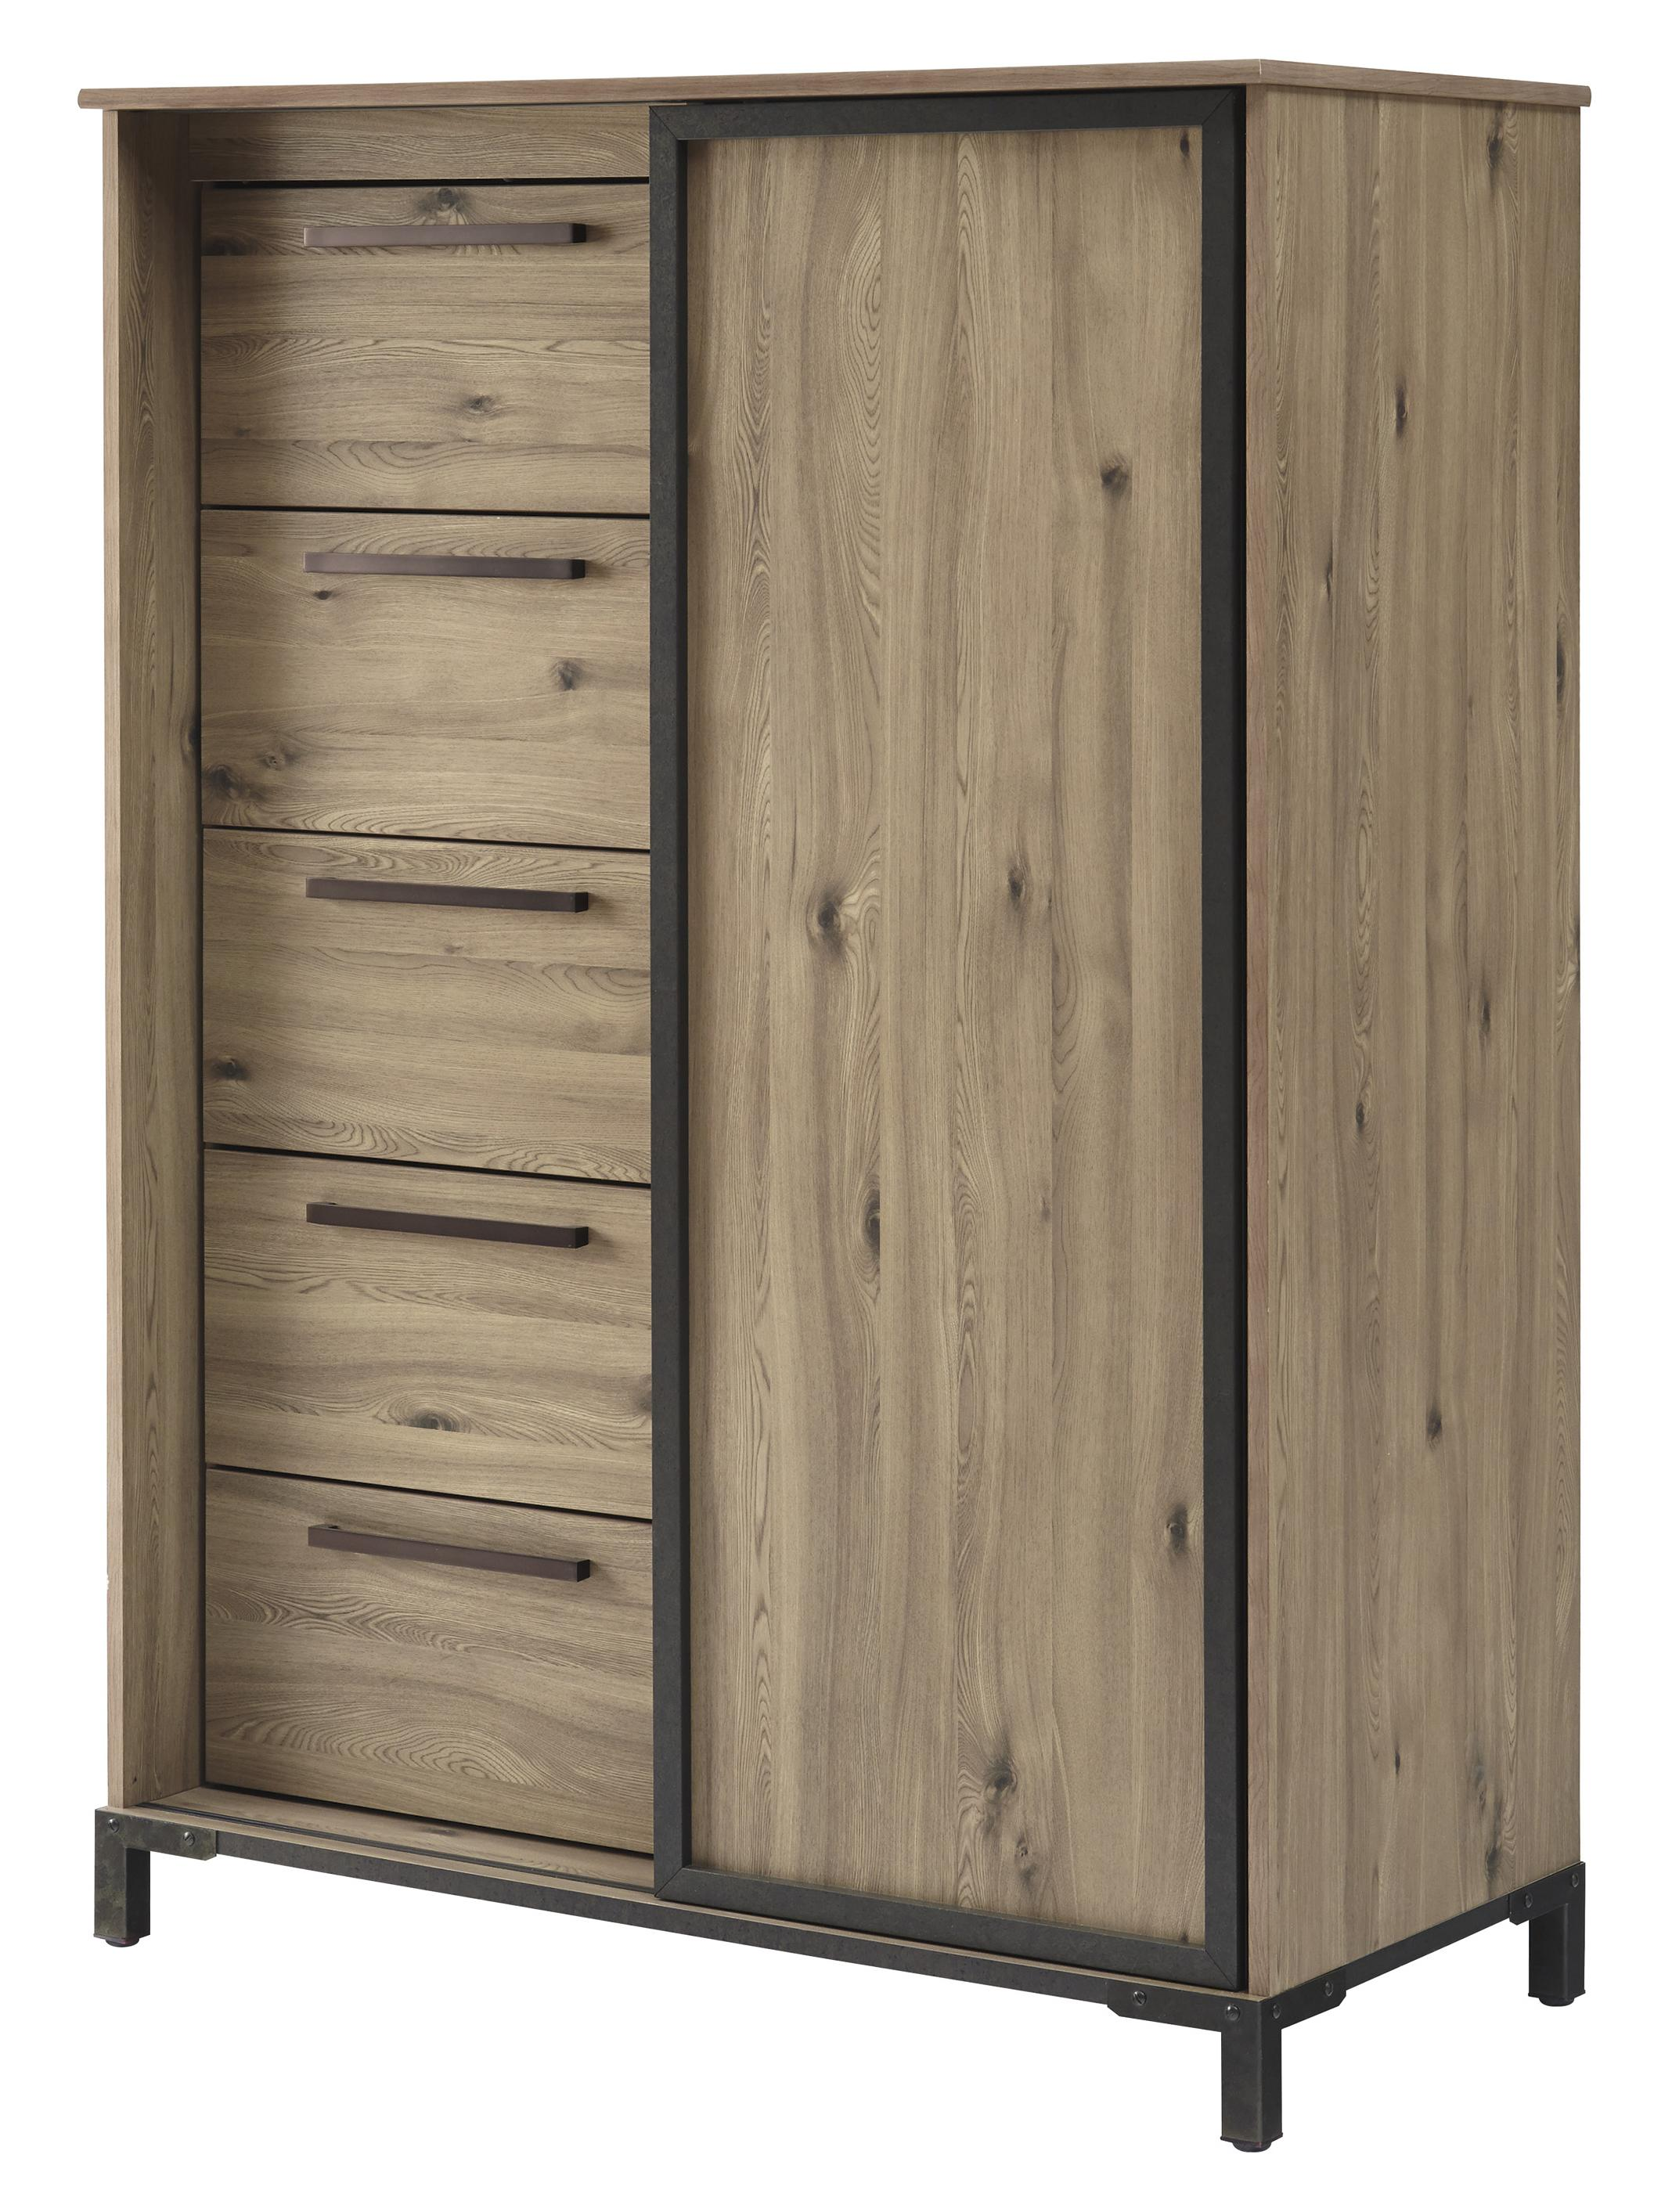 Signature Design by Ashley Dexifield Dressing Chest - Item Number: B298-48